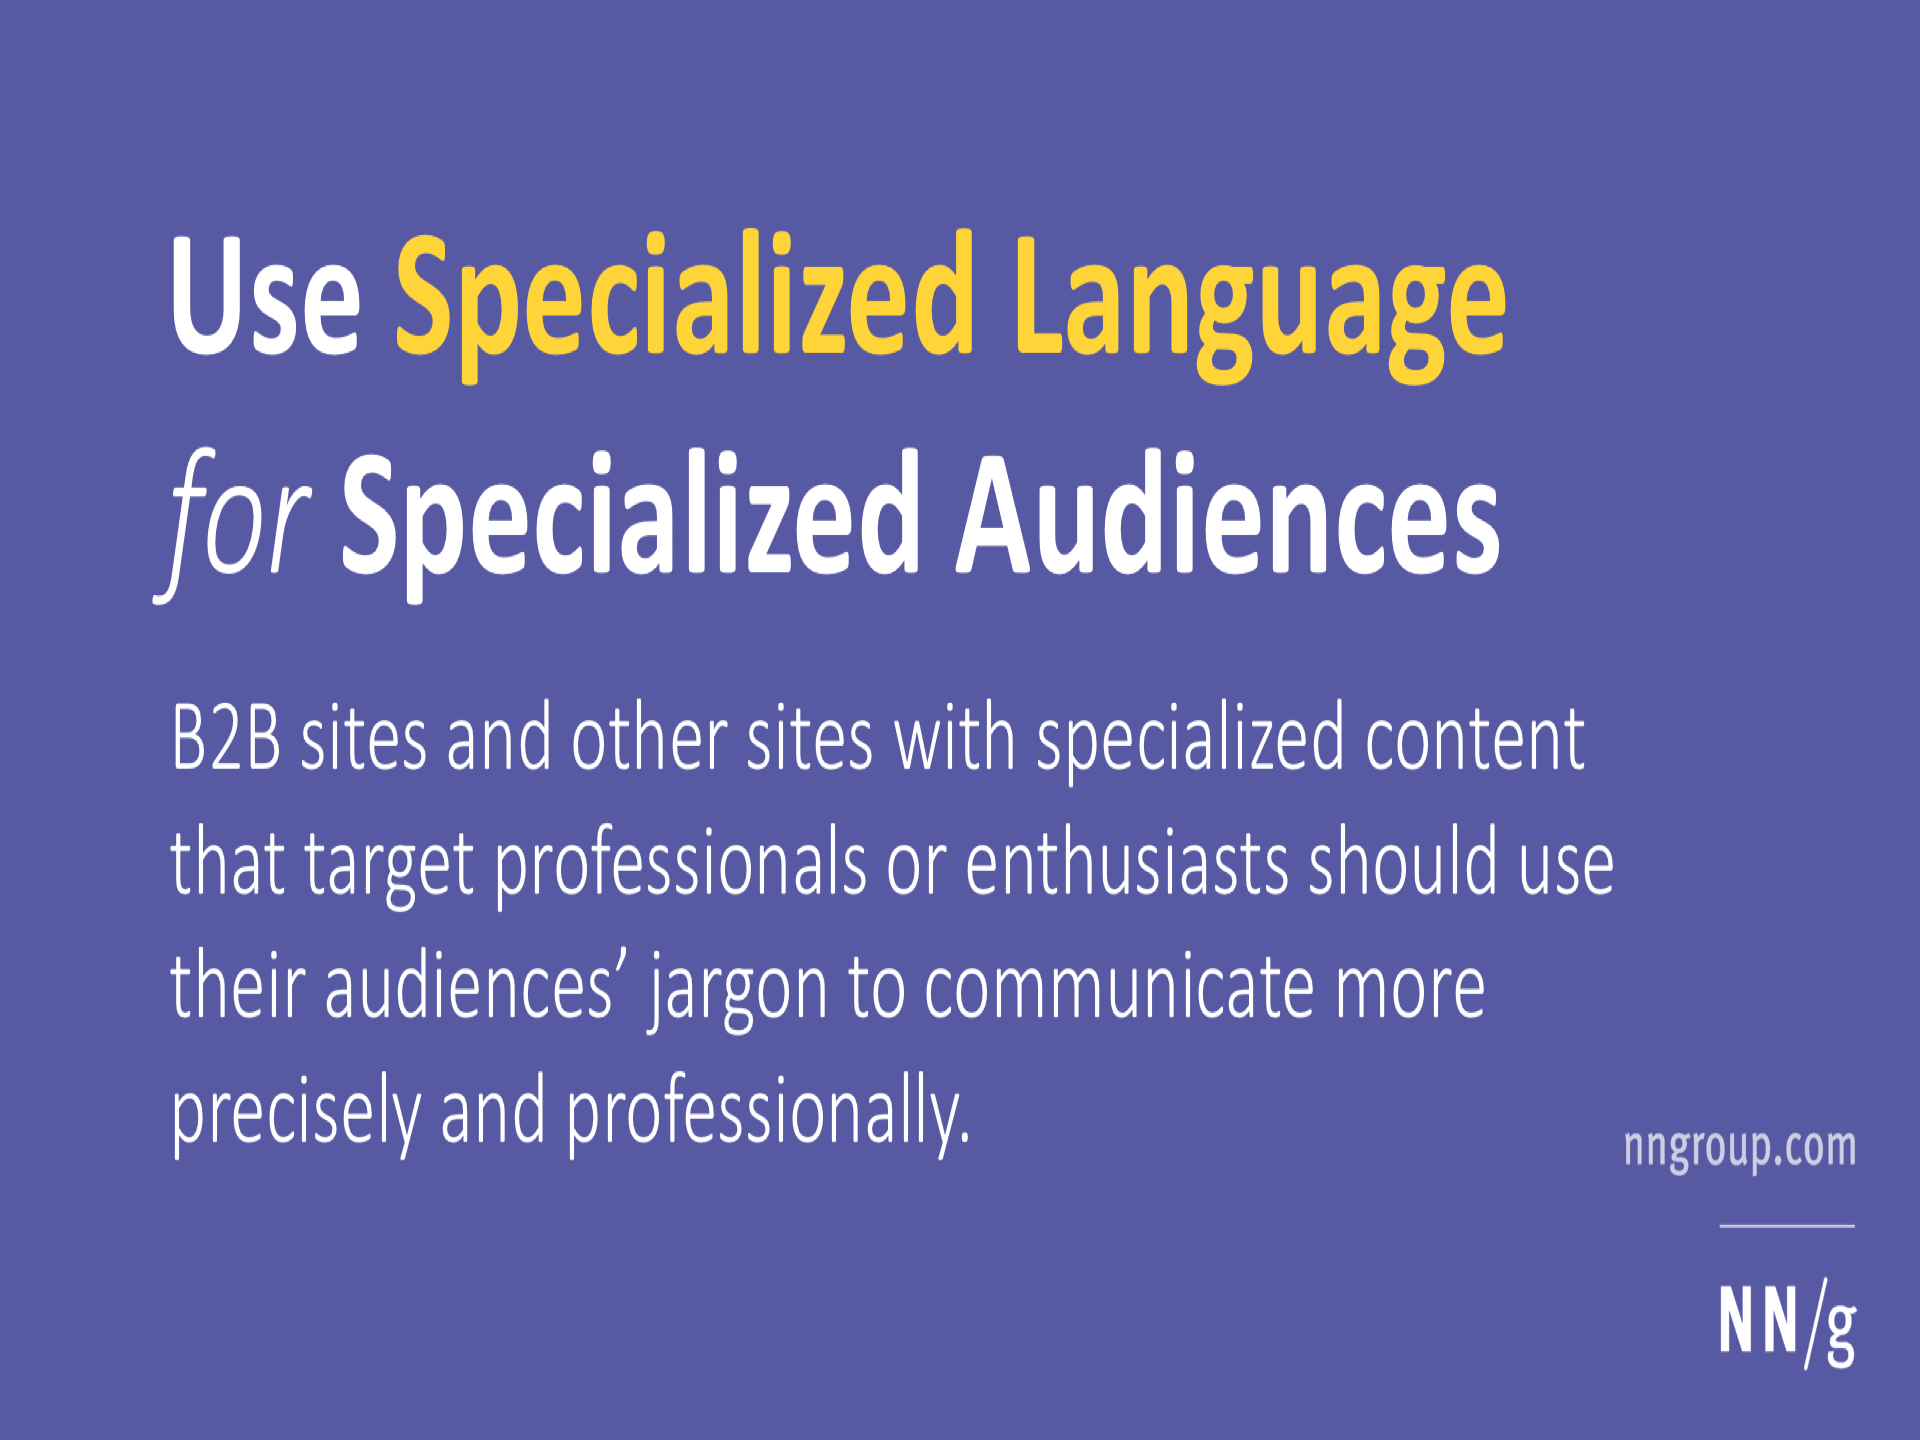 Use Specialized Language for Specialized Audiences